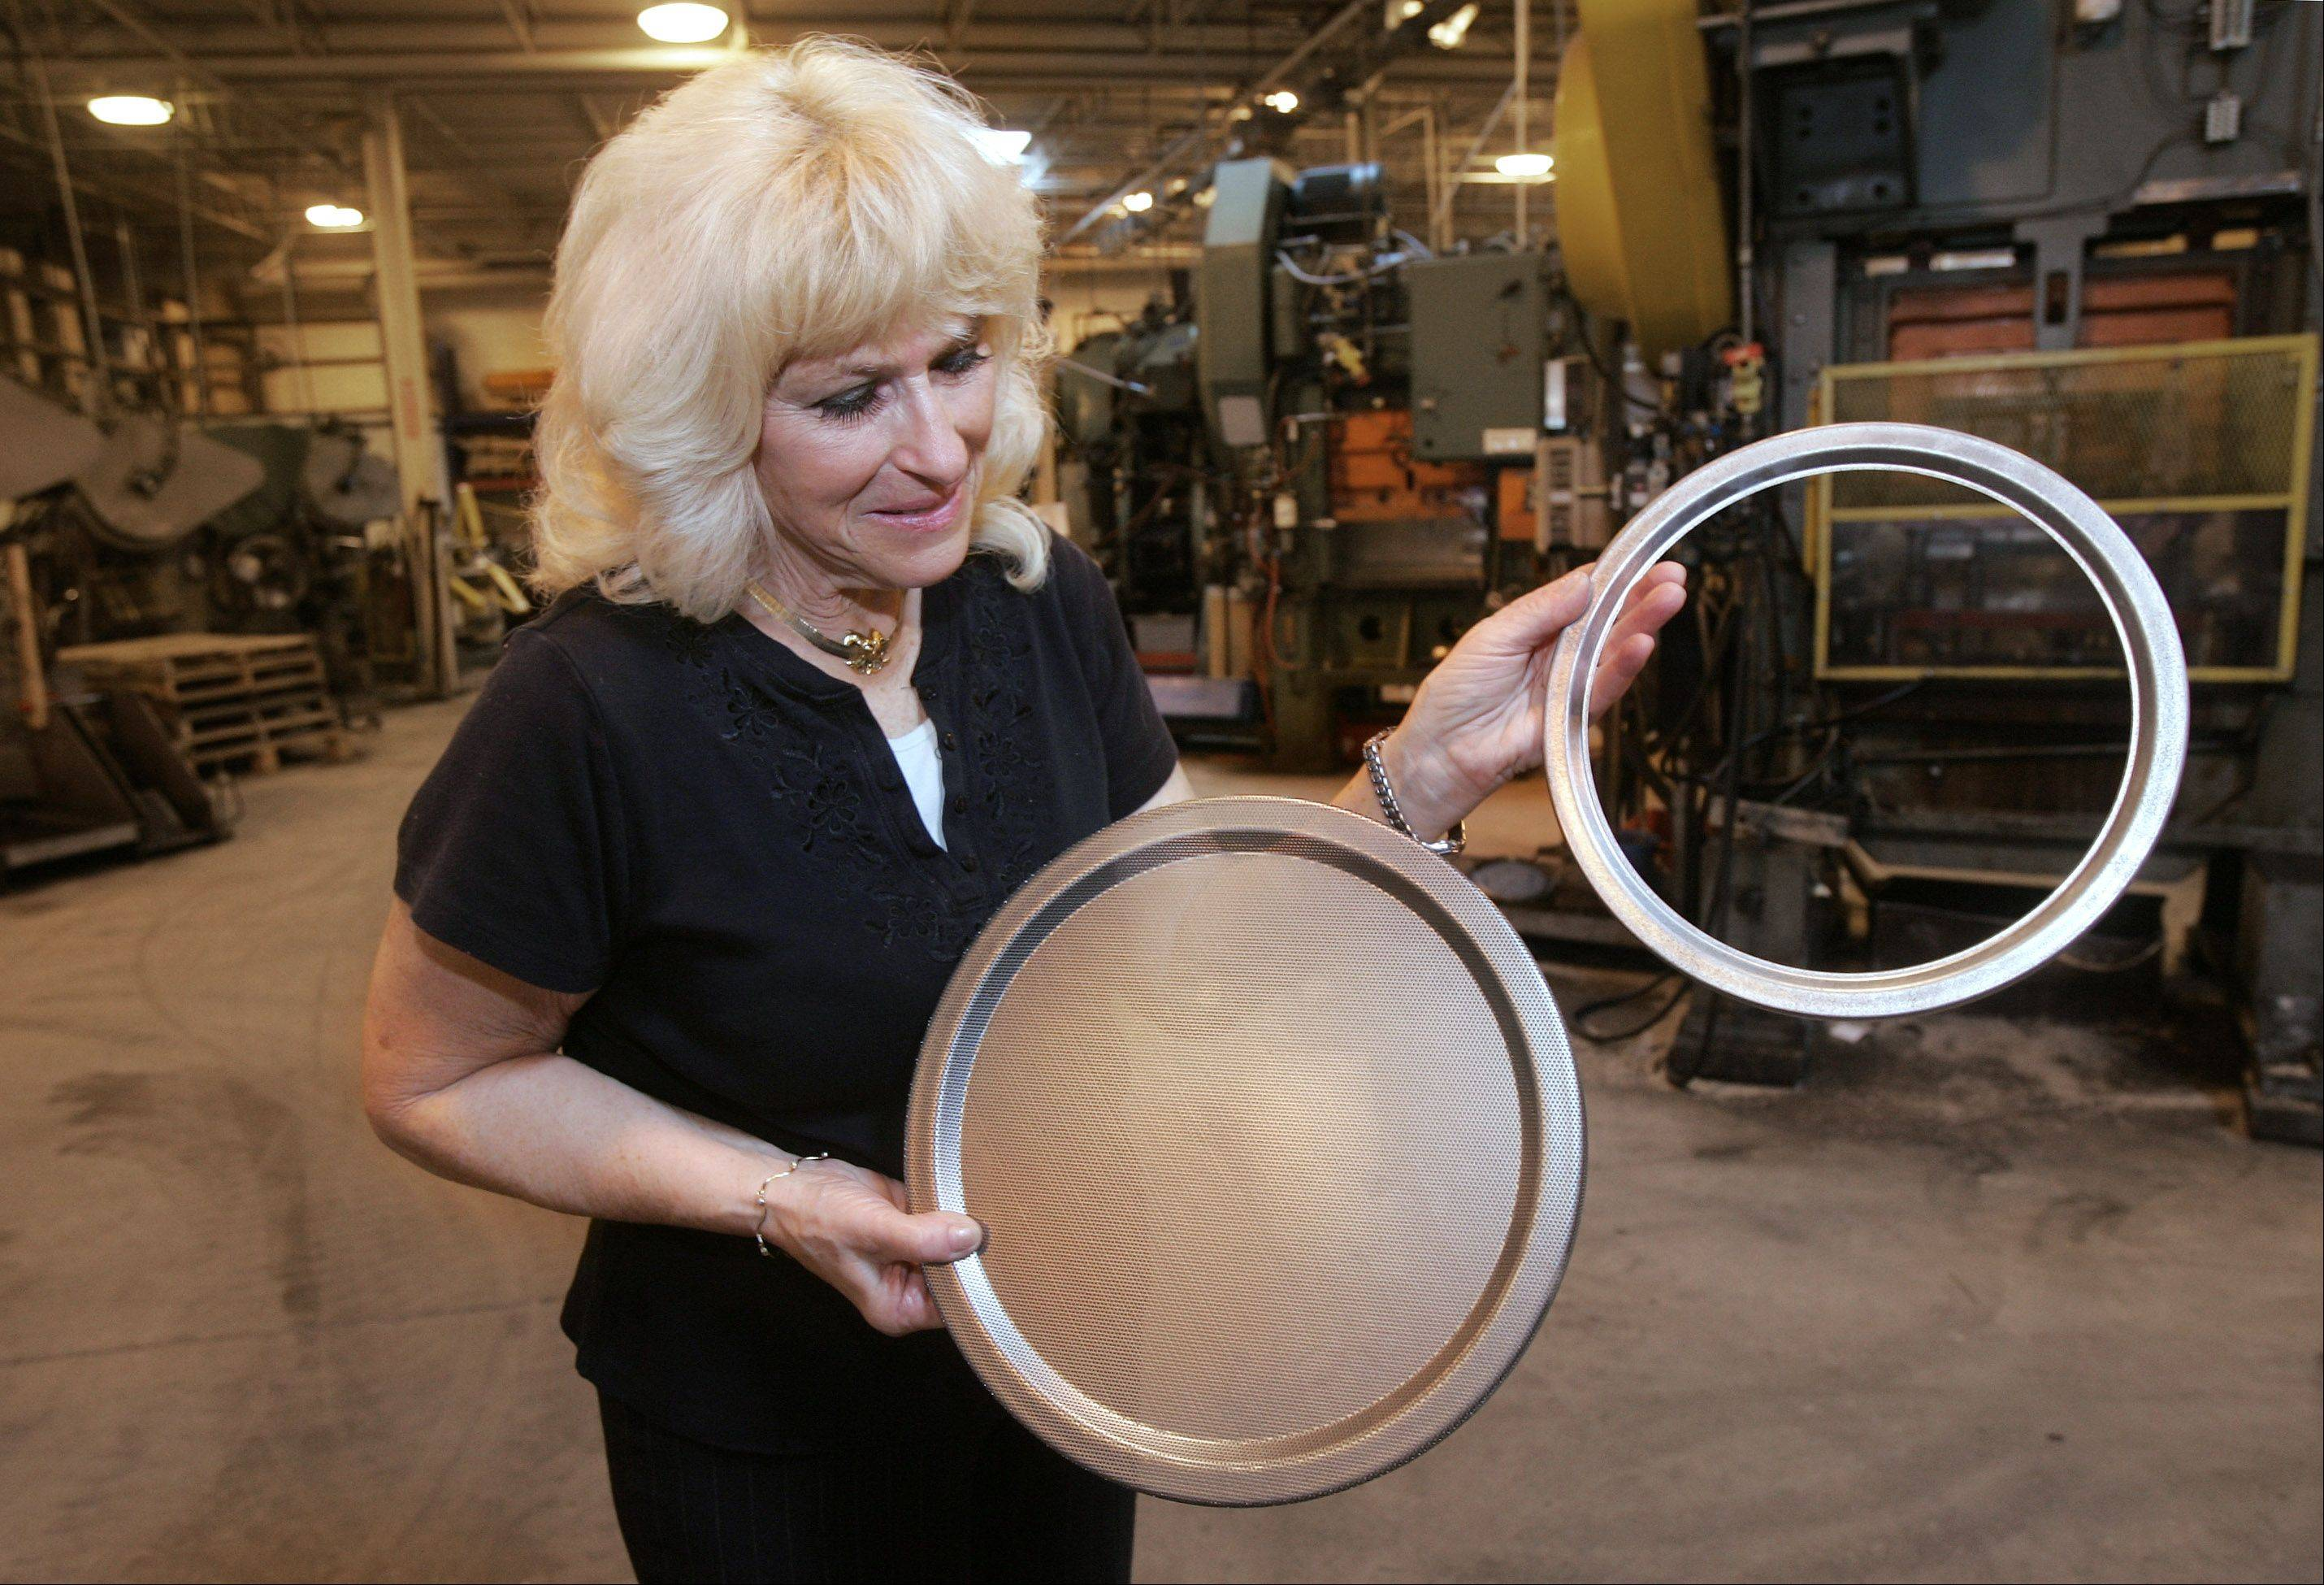 Domeny Tool and Stamping President Marge Domeny discusses products the Wauconda company manufactures. Hers is one of more than 50 area manufacturers to team with Harper College in Palatine for a new advanced manufacturing program.